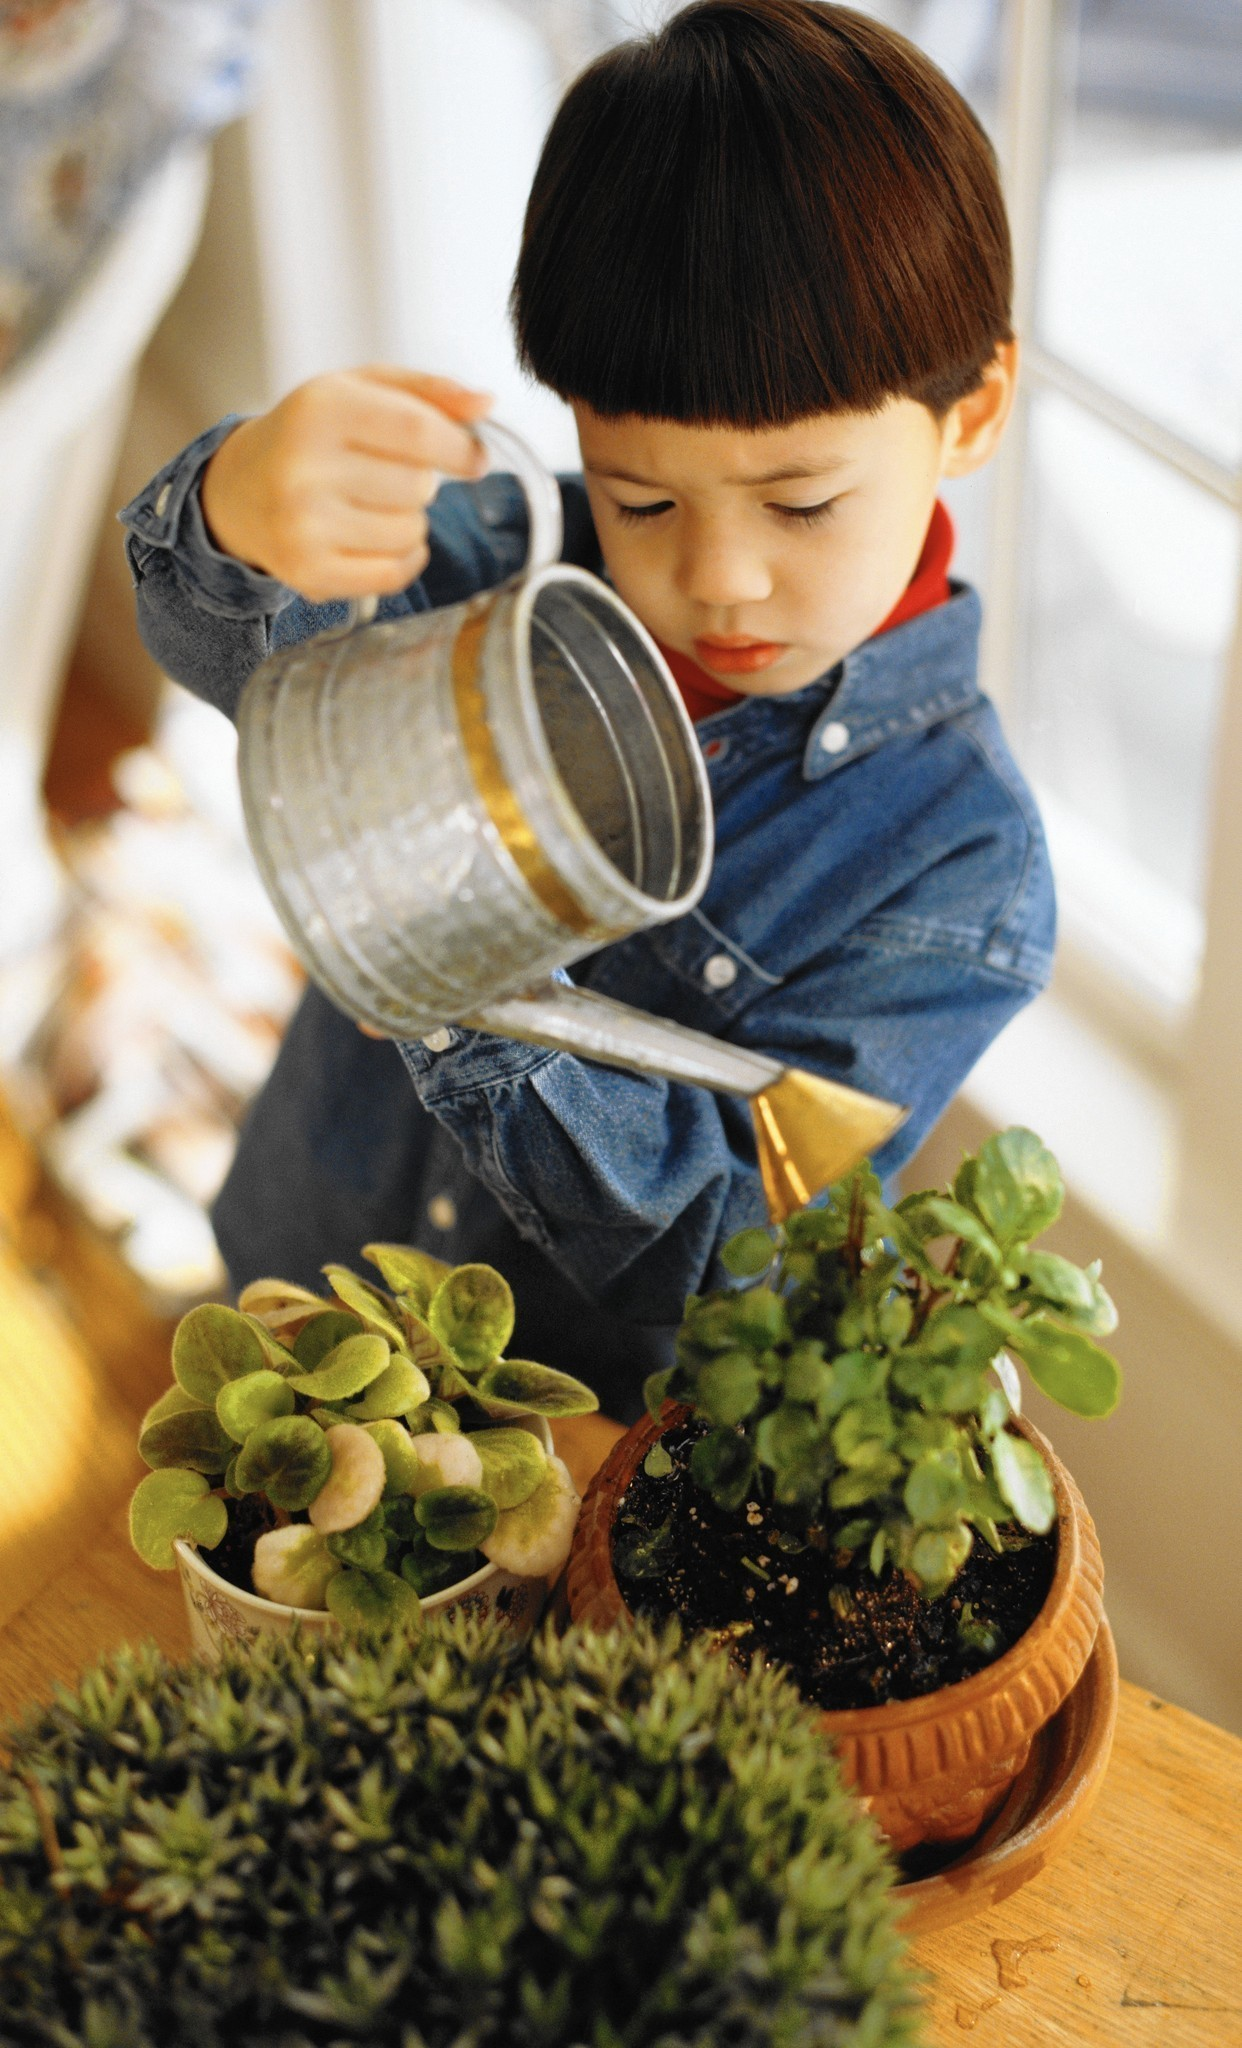 Children Can Grow Along With The Houseplants They Tend